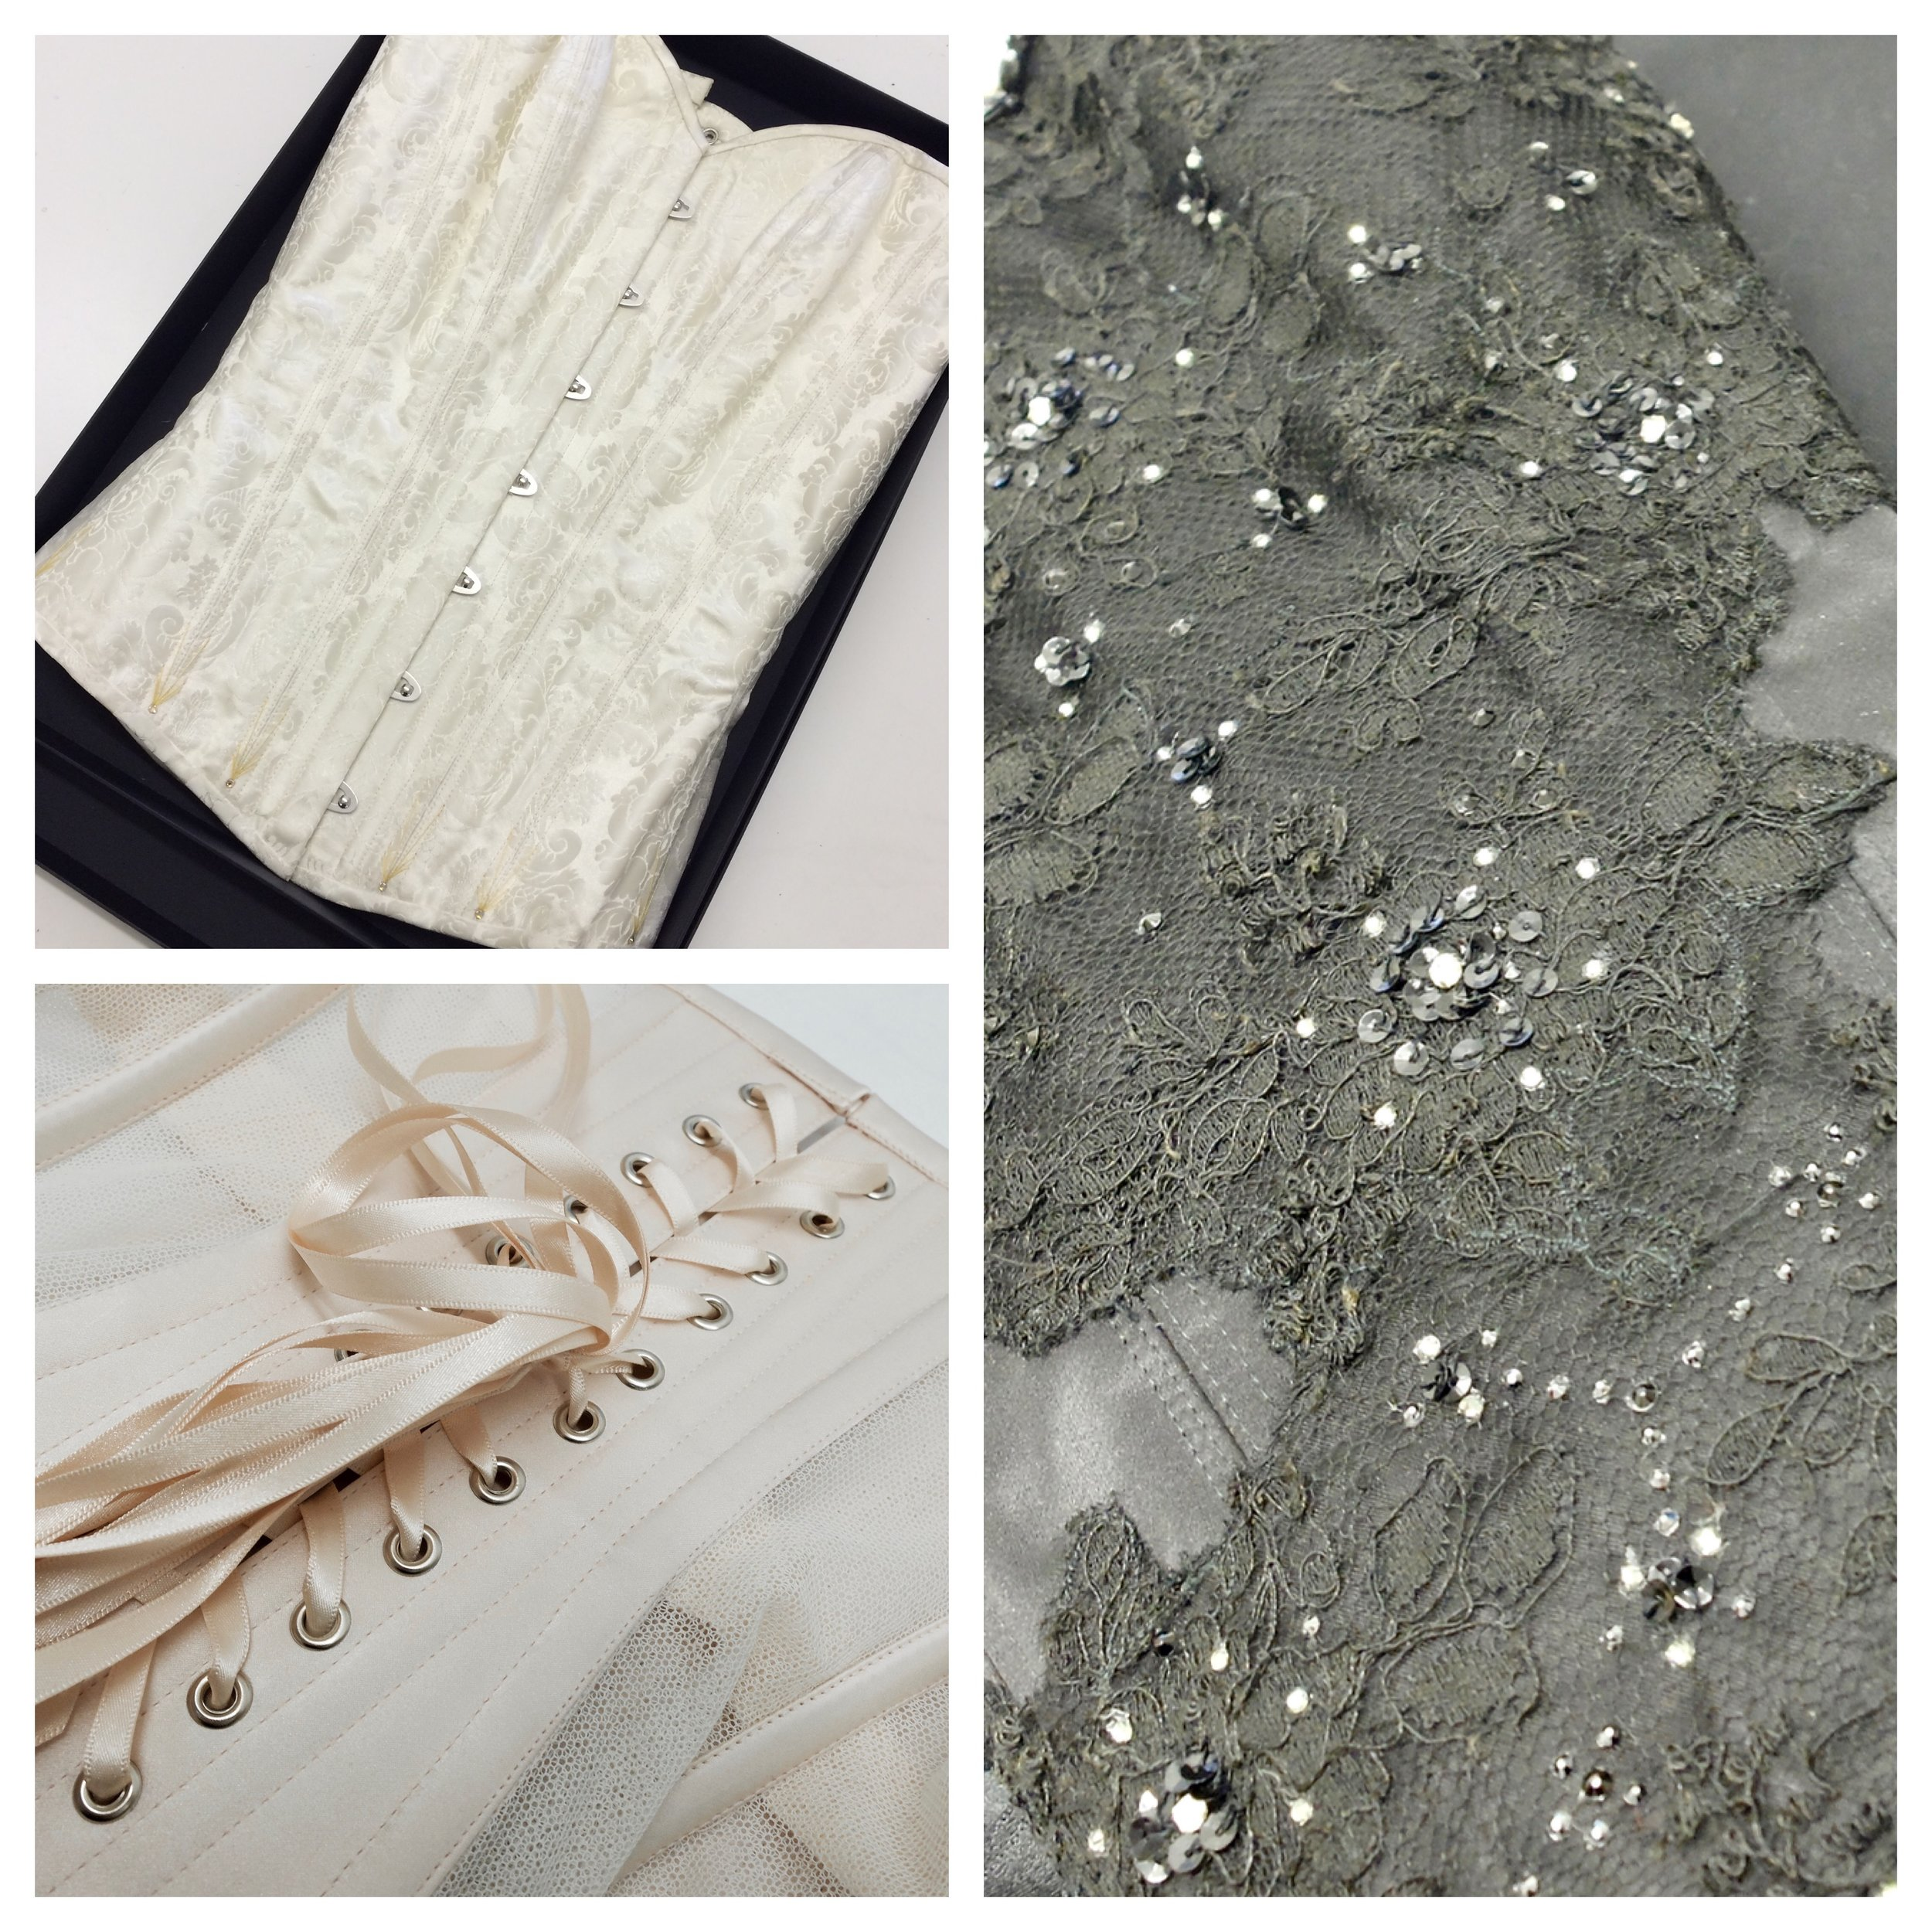 A set of three bespoke corsets - top left is pattern matched jaquard silk, right is a custom overbust with vintage lace and beads embellishments, bottom left is a bobbinet underbust designed for use under vintage couture clothing.